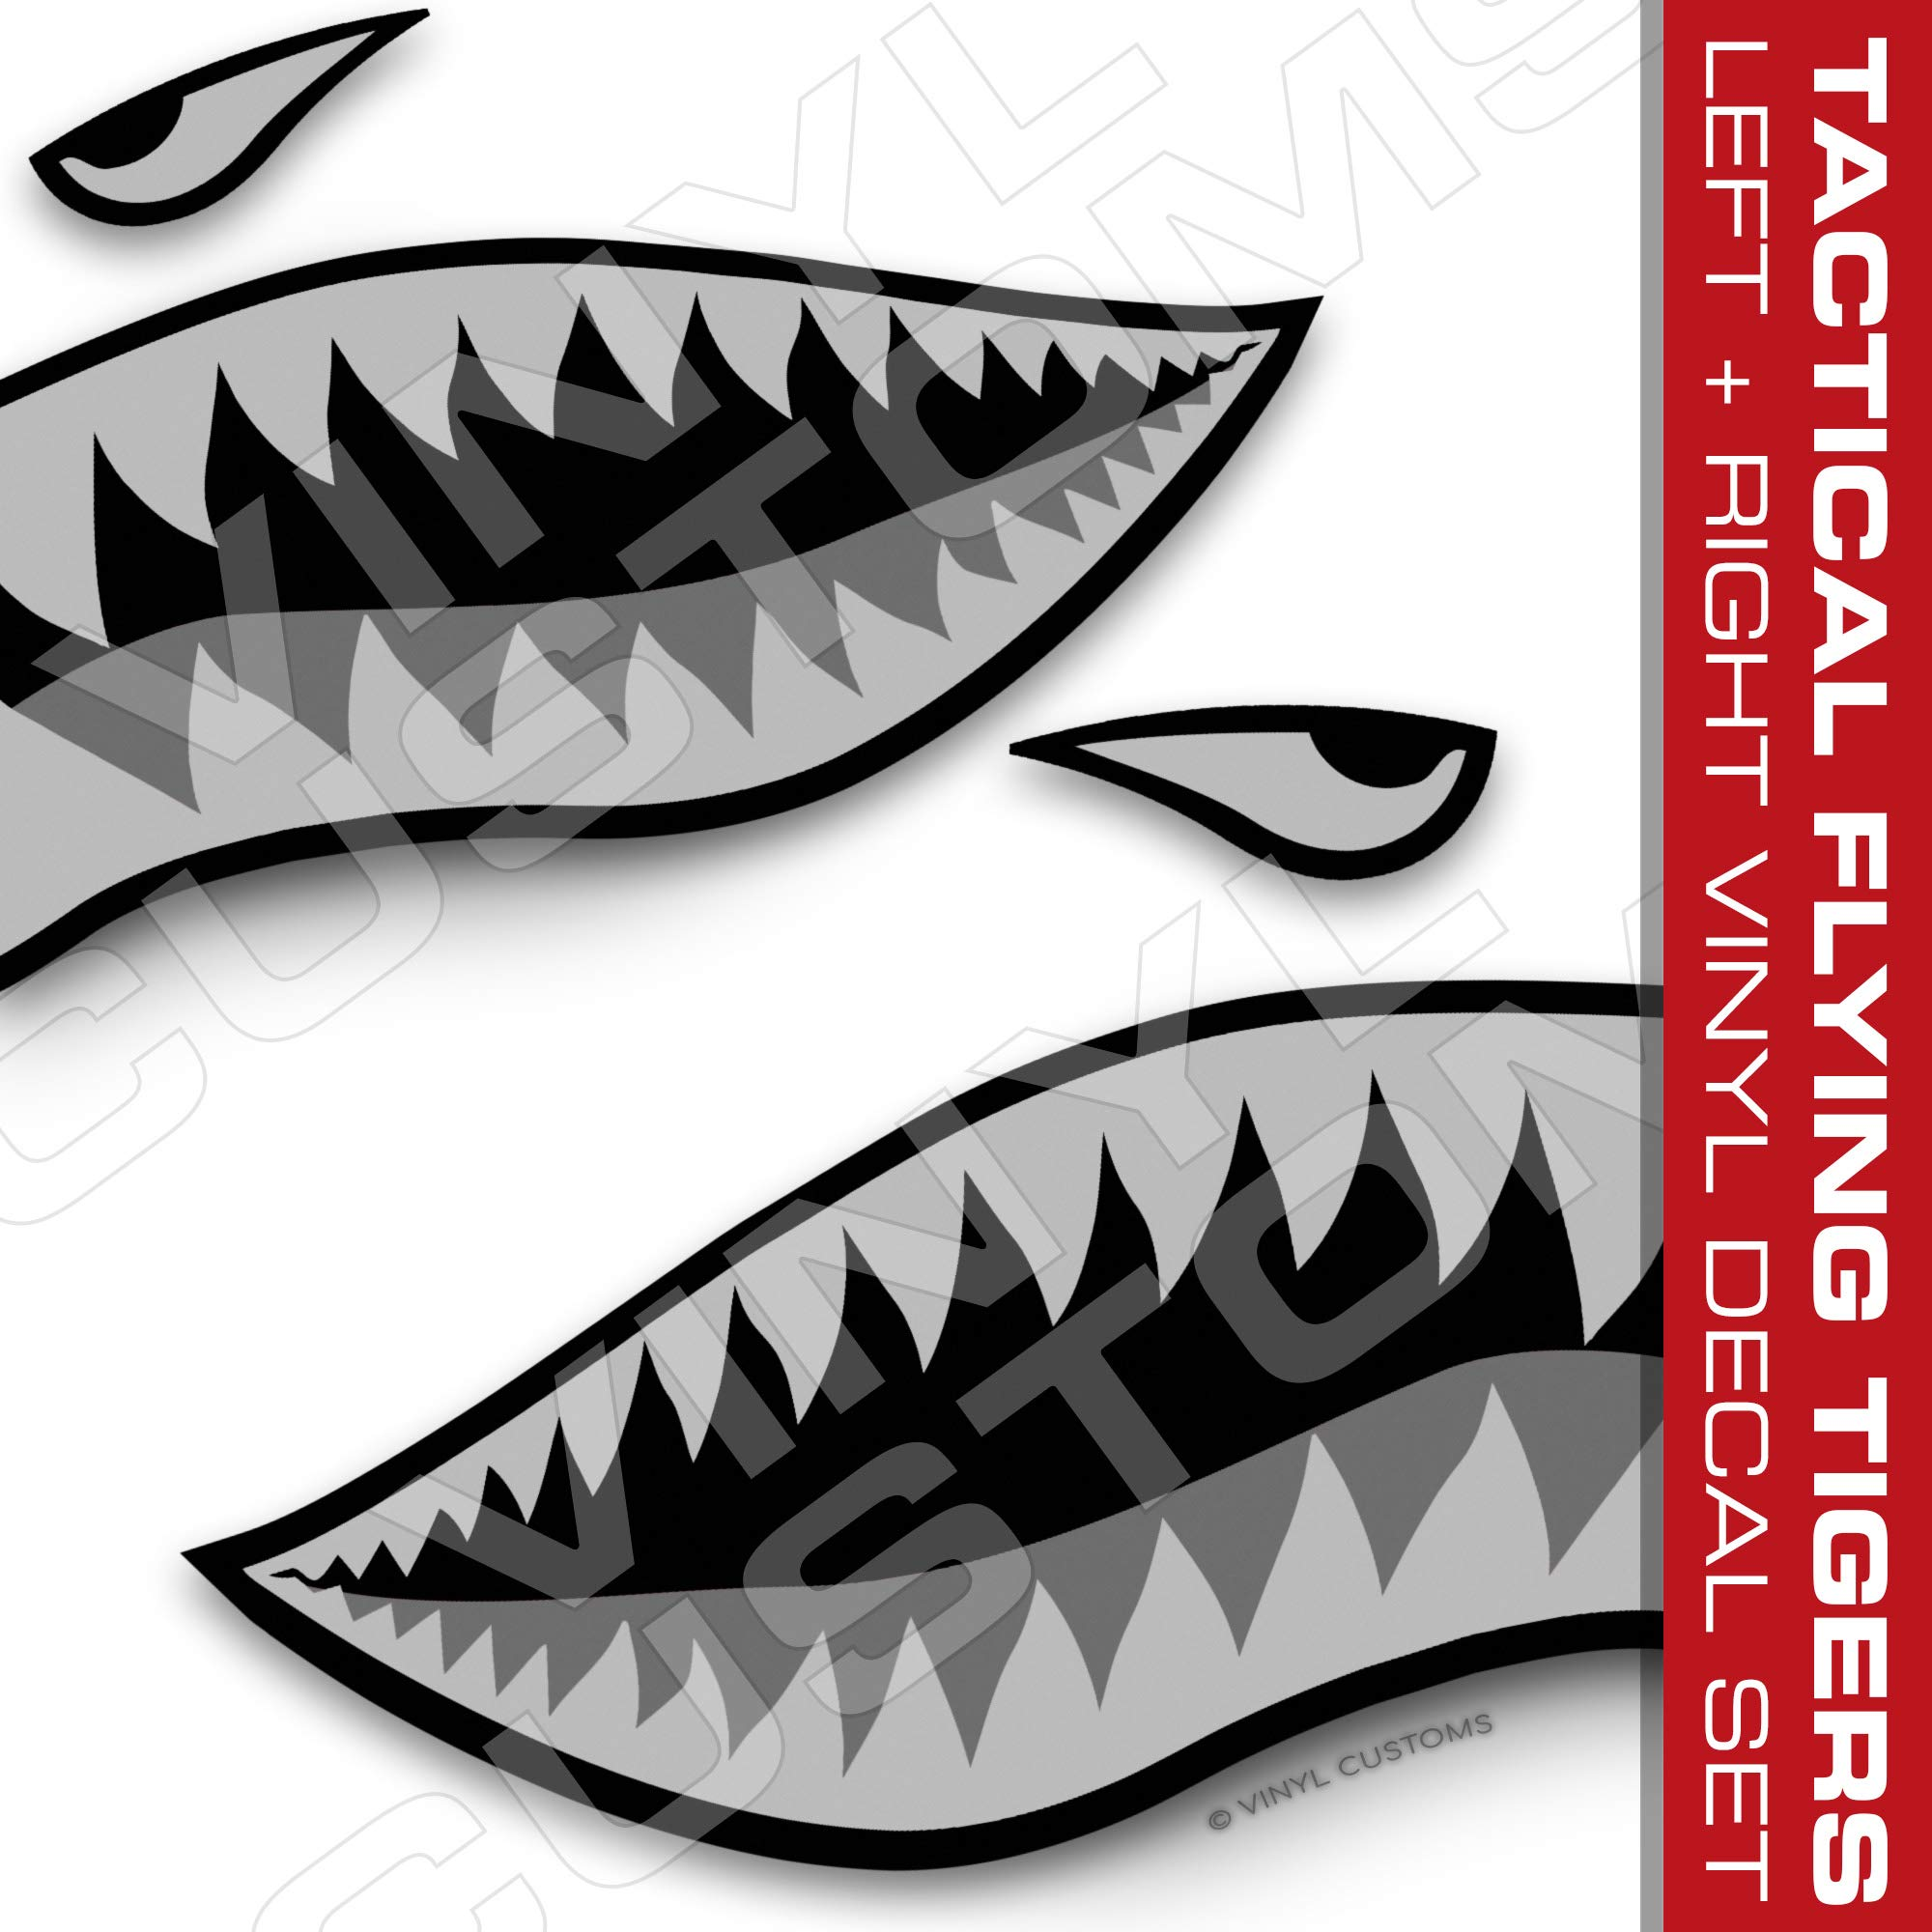 Flying Tigers Shark Mouth Teeth Vinyl Decals Car Truck Boat Graphics Tactical (30'' inches / 1 Pair)